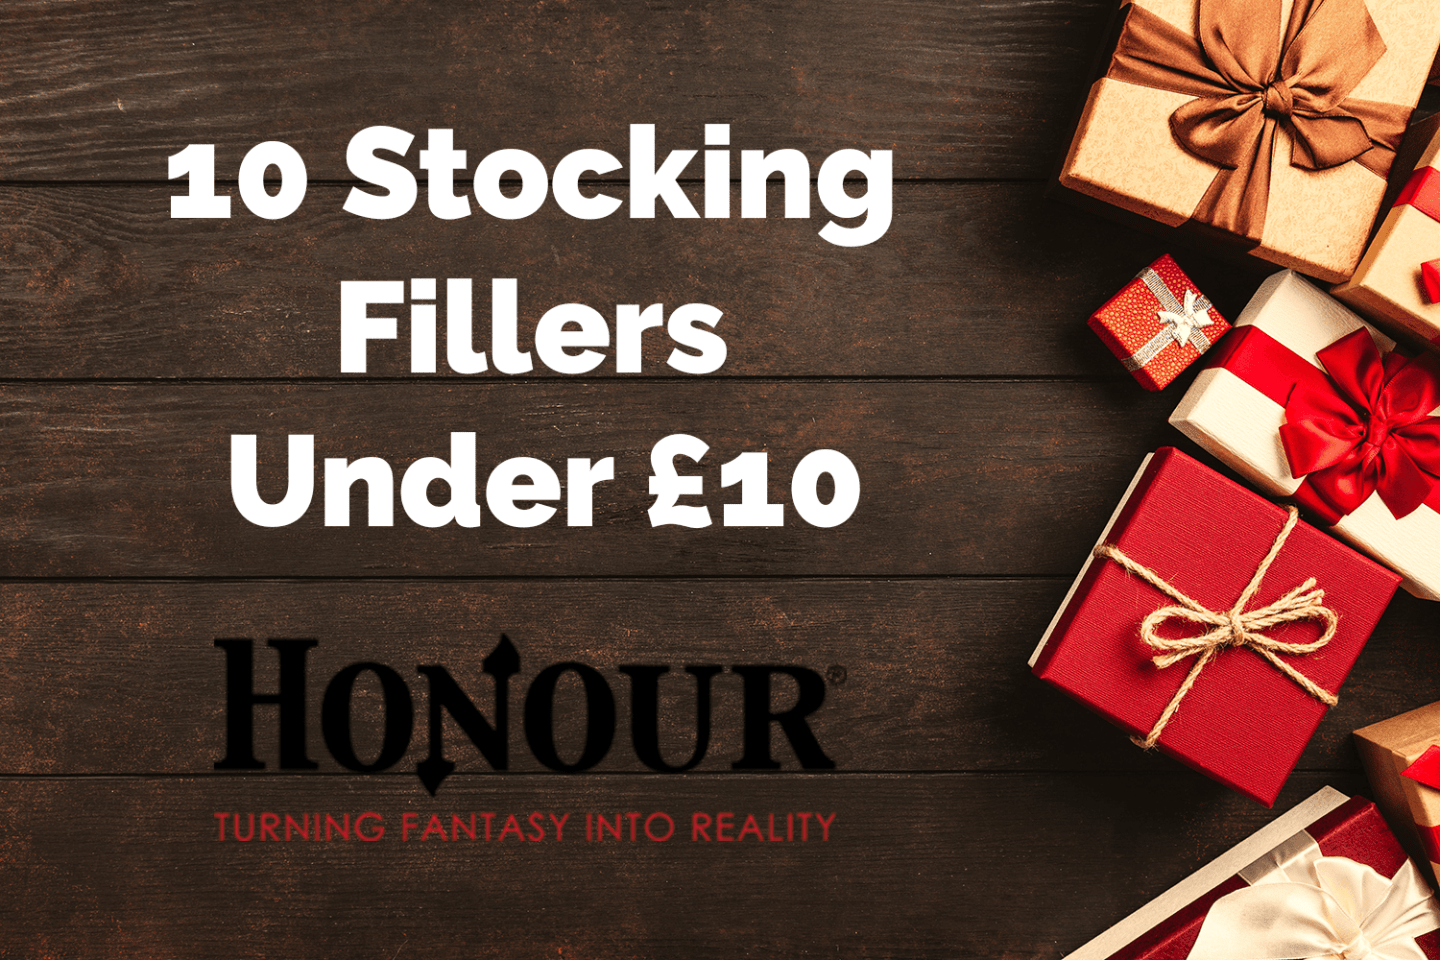 Honour: 10 Stocking Fillers Under £10